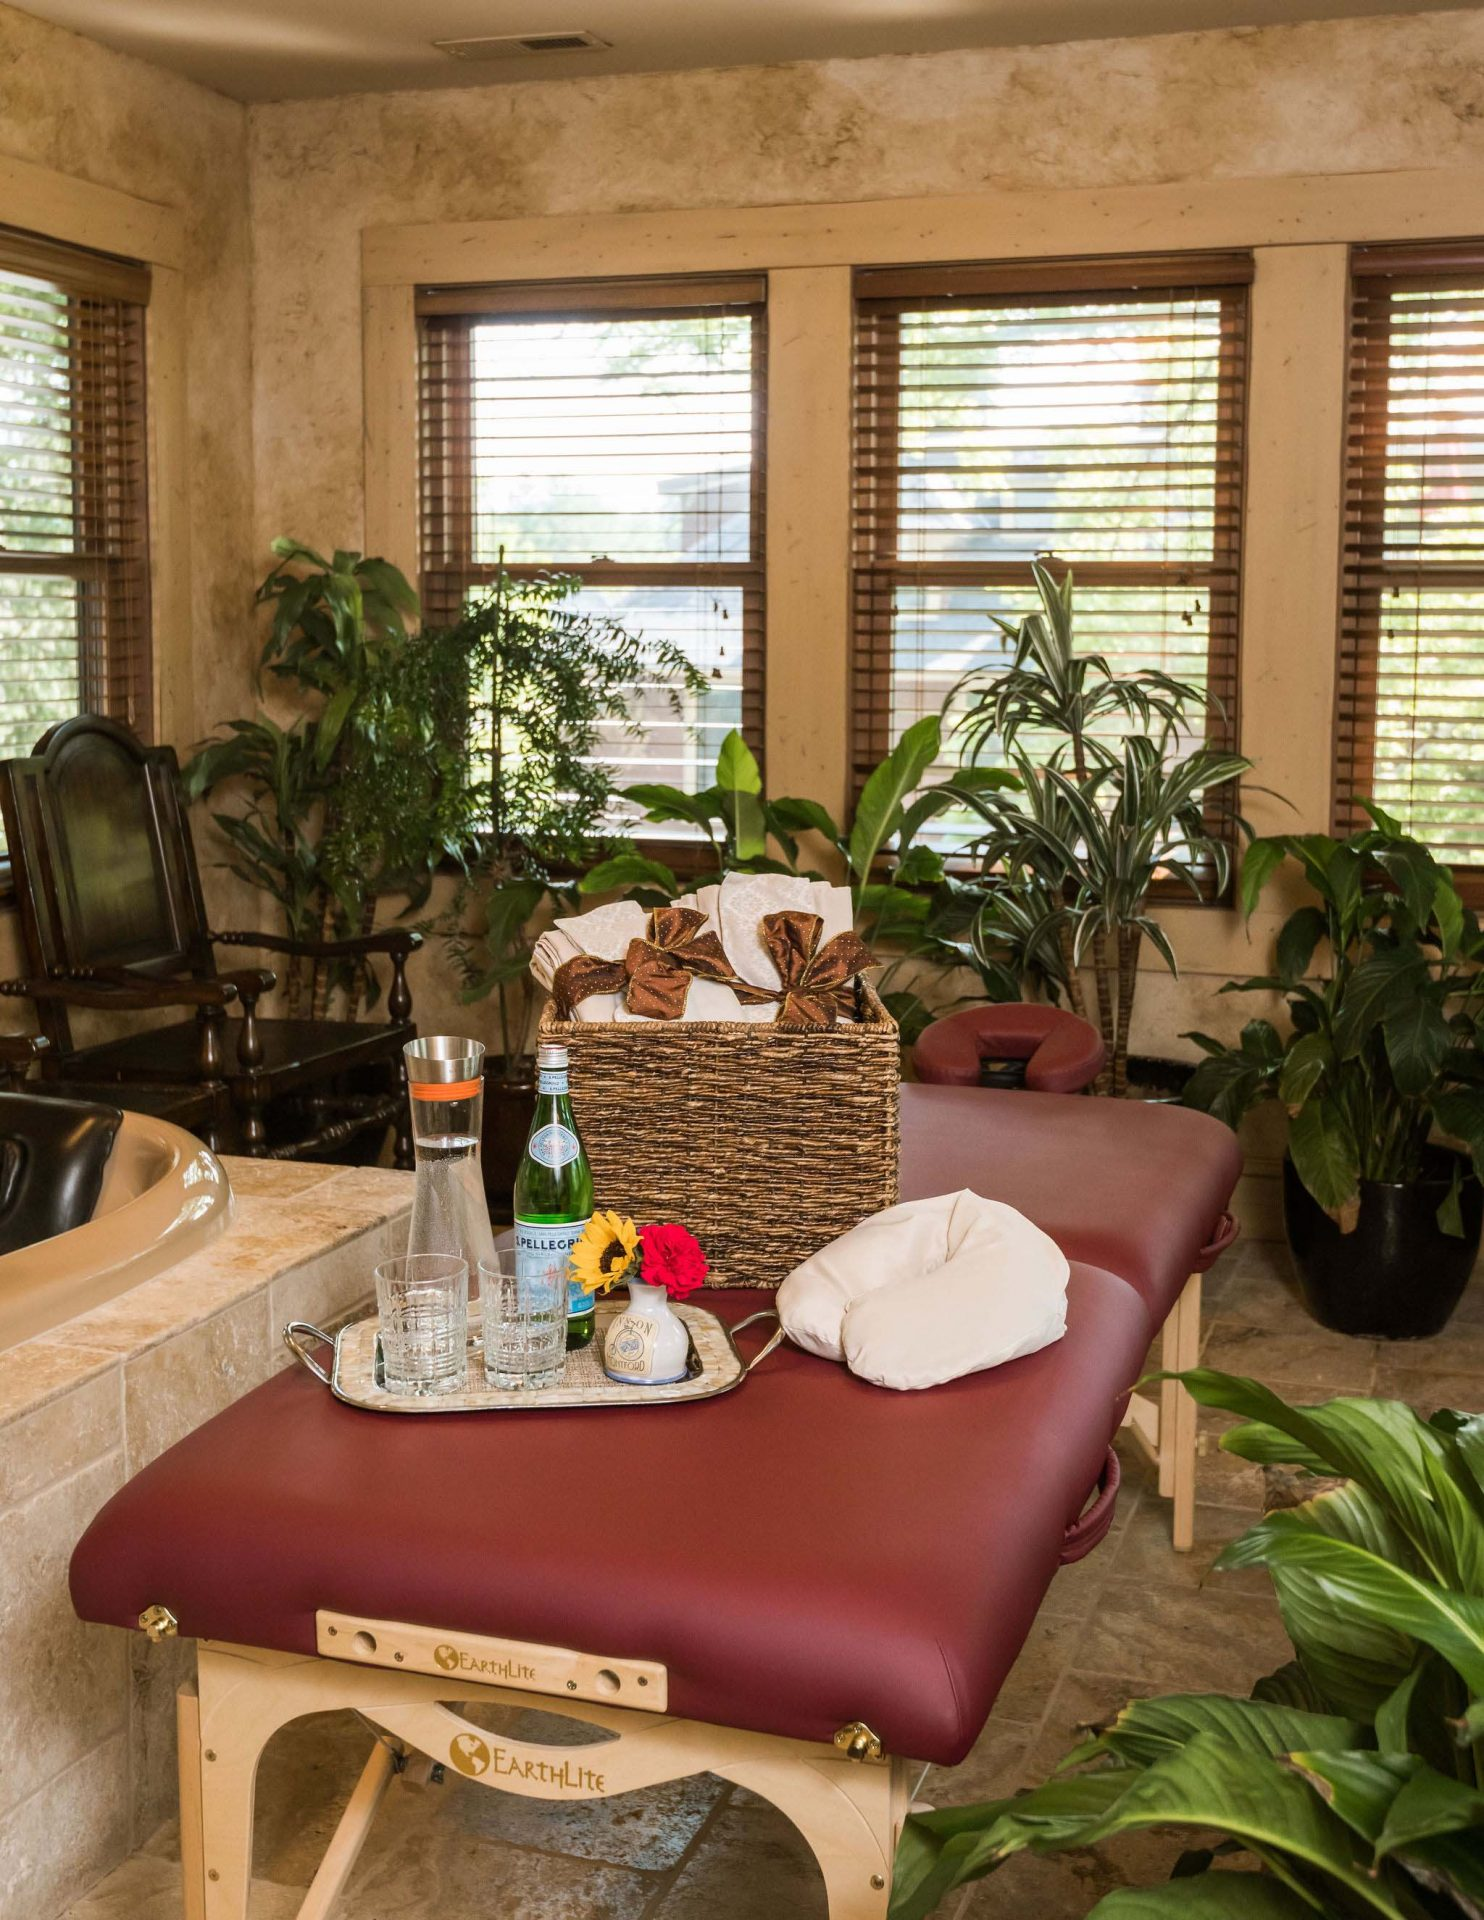 A massage table with a basket of folded towels, tray with a water bottle, caraffe, 2 glasses and a small flower bouquet. Massage therapy in a private bathroom full of plants.